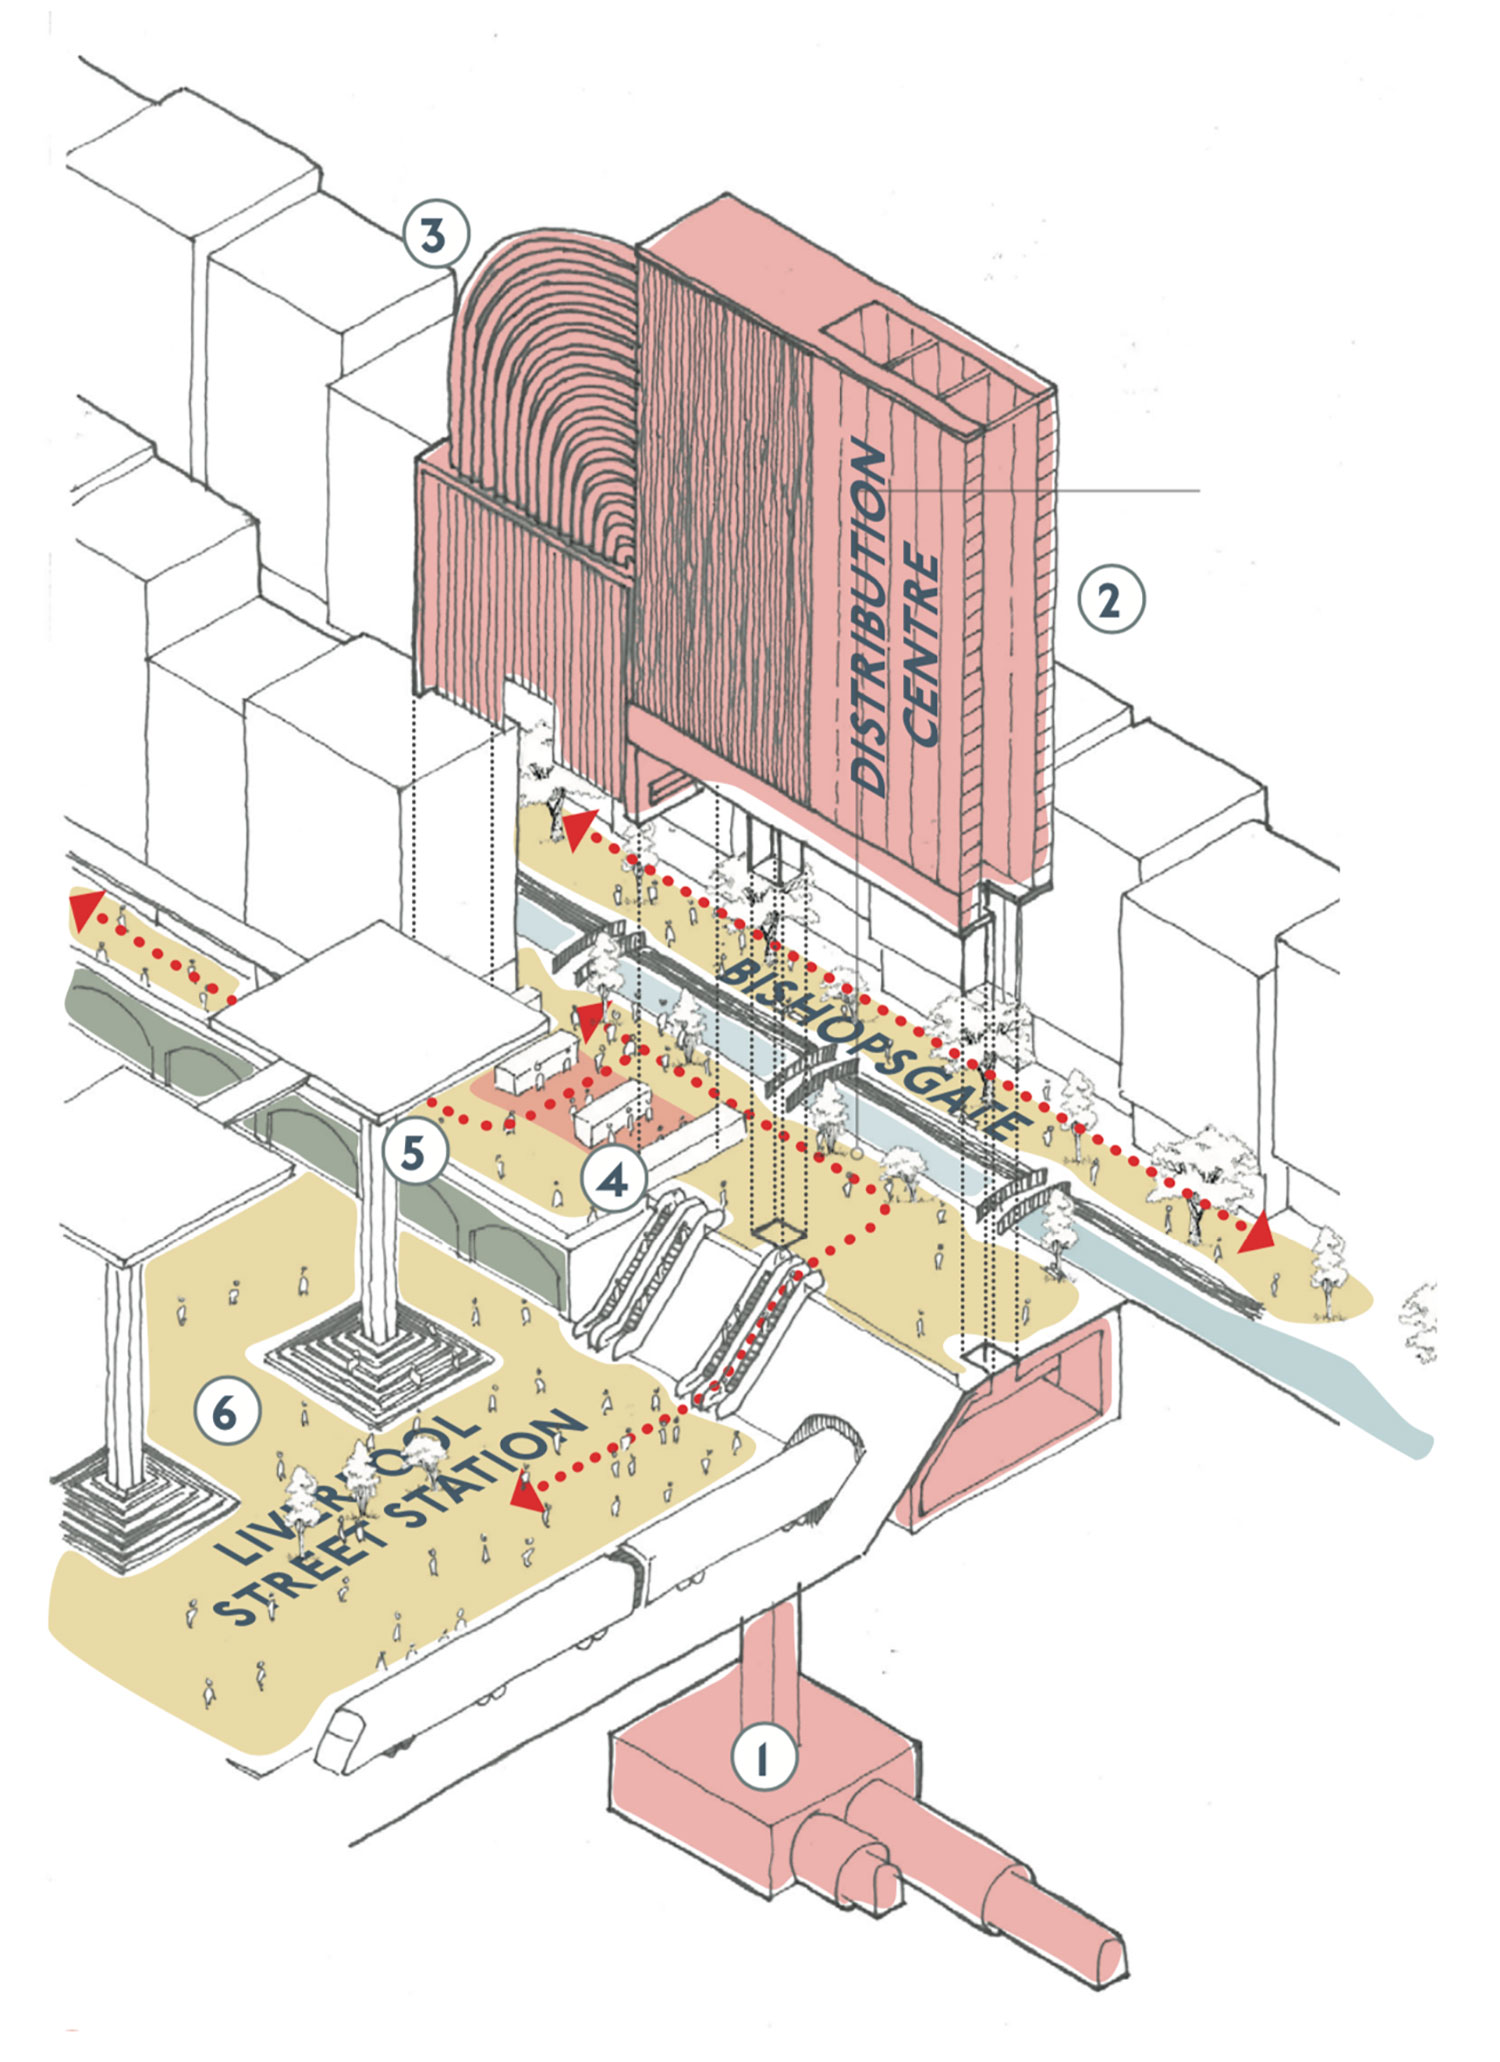 A landmark distribution centre is located  within Liverpool Street Station. The collection point is incorporated into the station entrance minimising disruption to day-to-day routine. The station becomes a new public space as changing work habits reduce the rush hour peak.